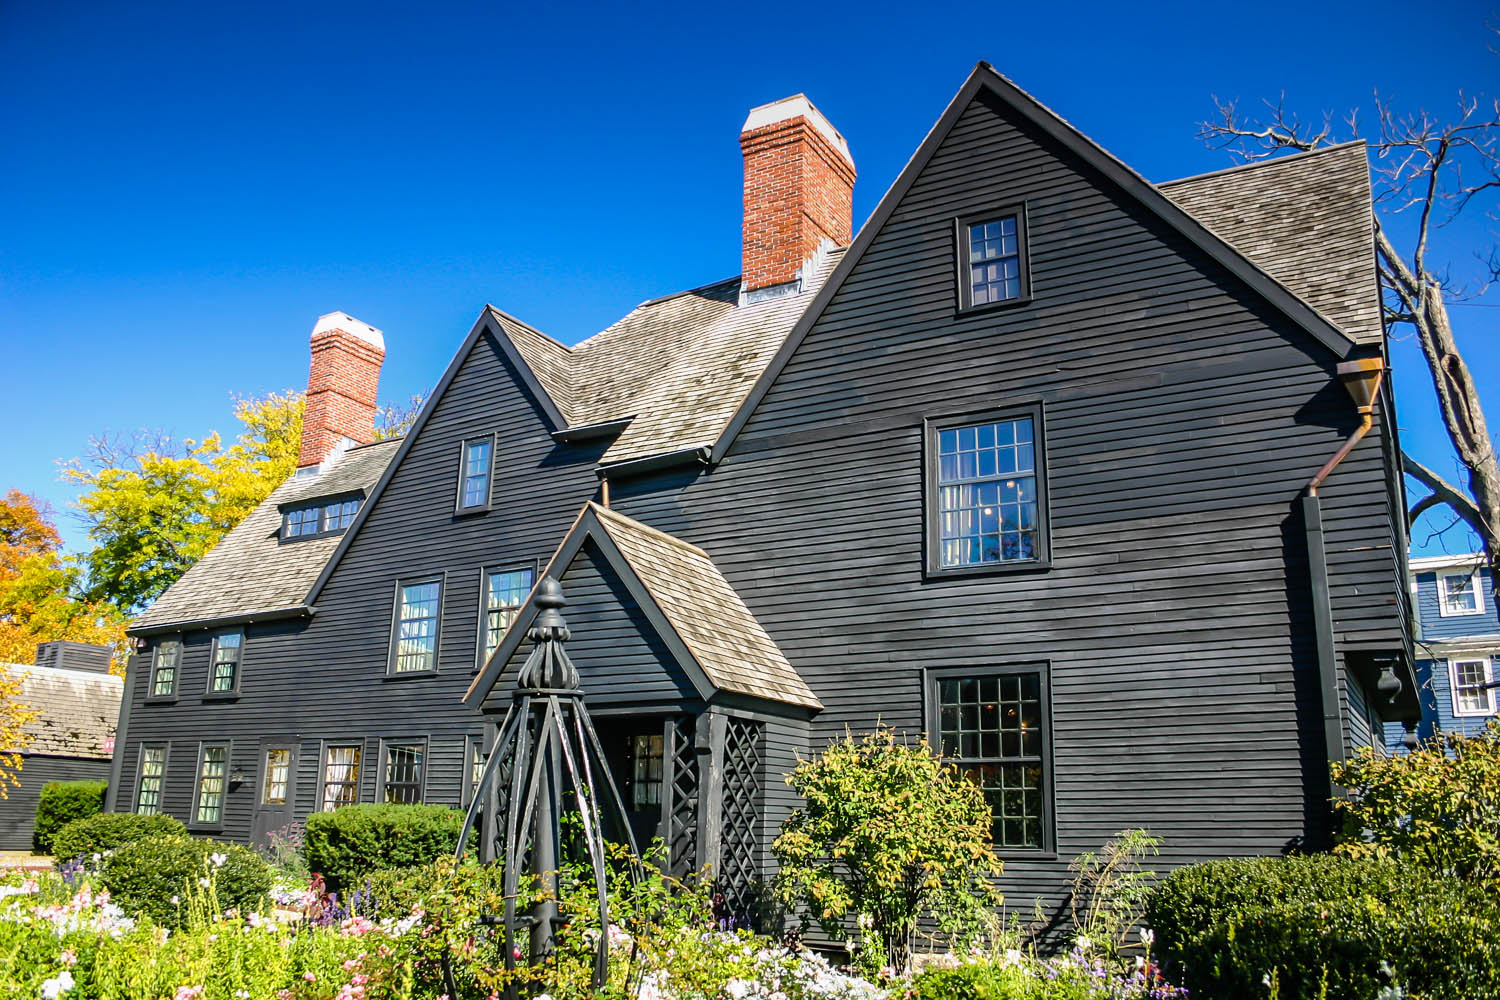 House of Seven Gables - Salem MA #visitMA @GetawayMavens